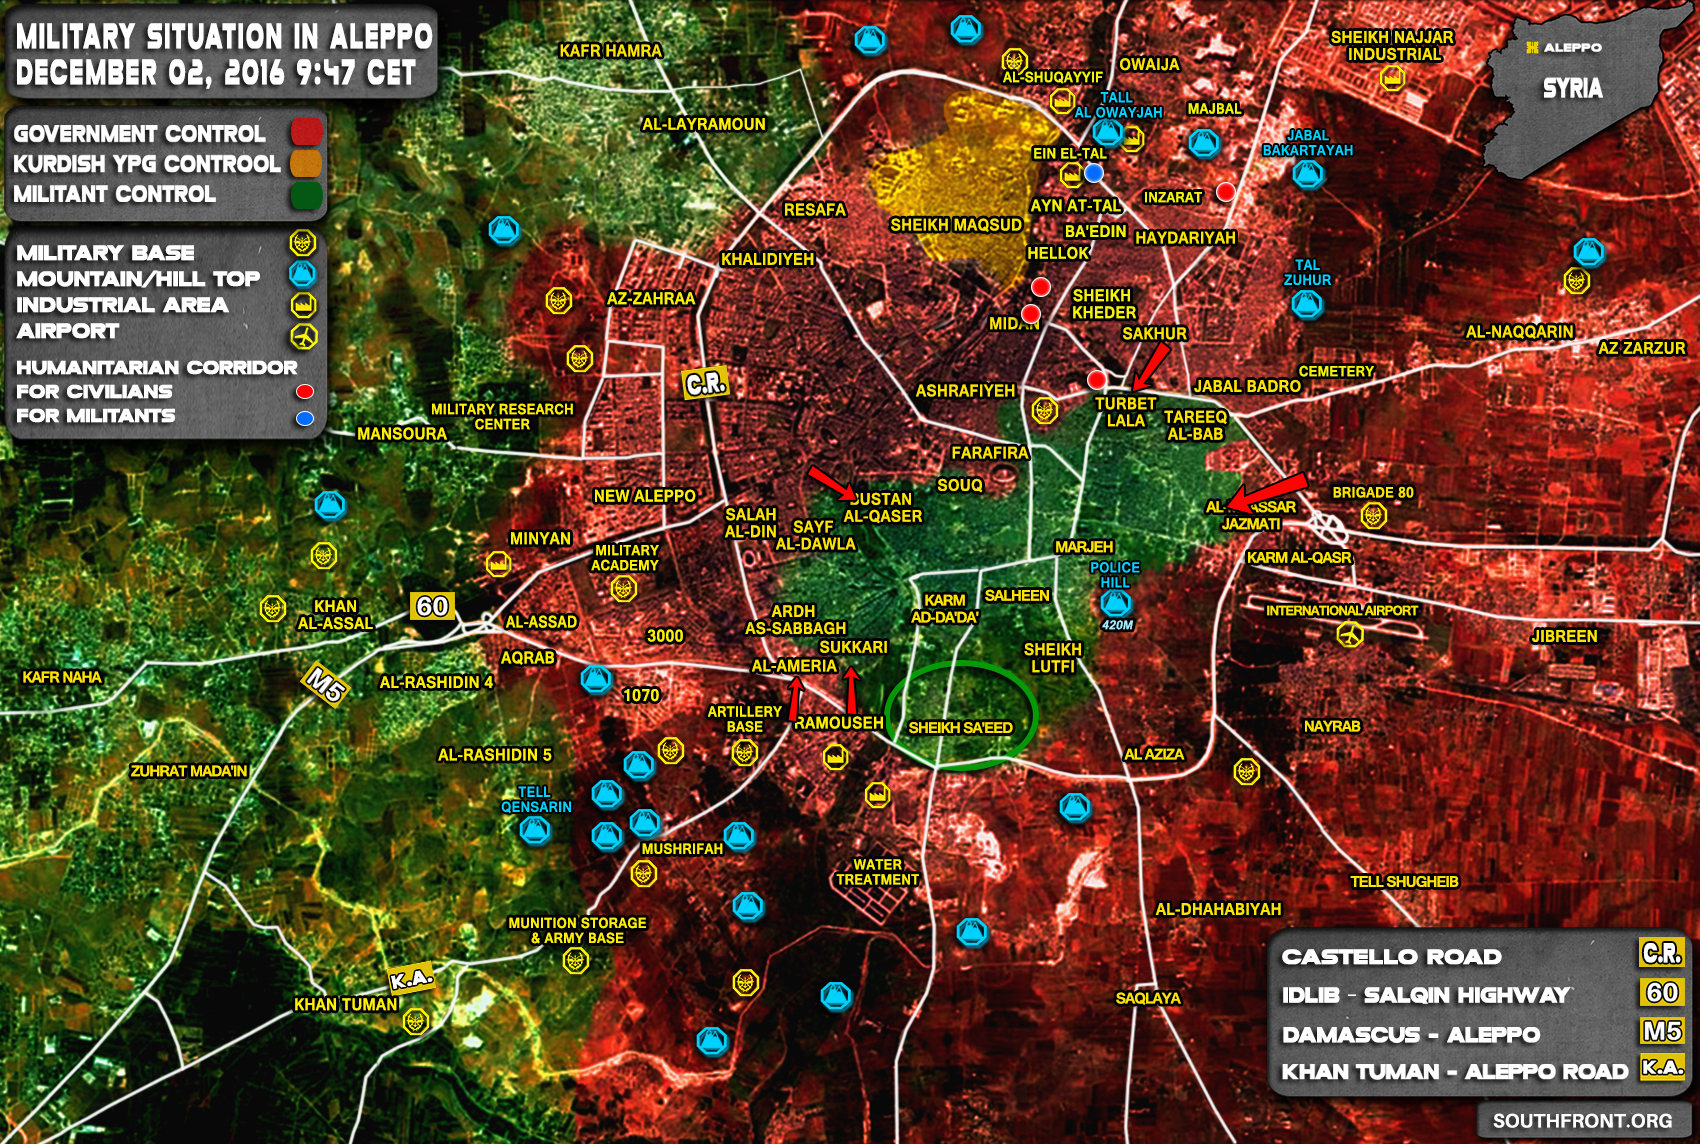 Military Situation in Aleppo City on December 2, 2016